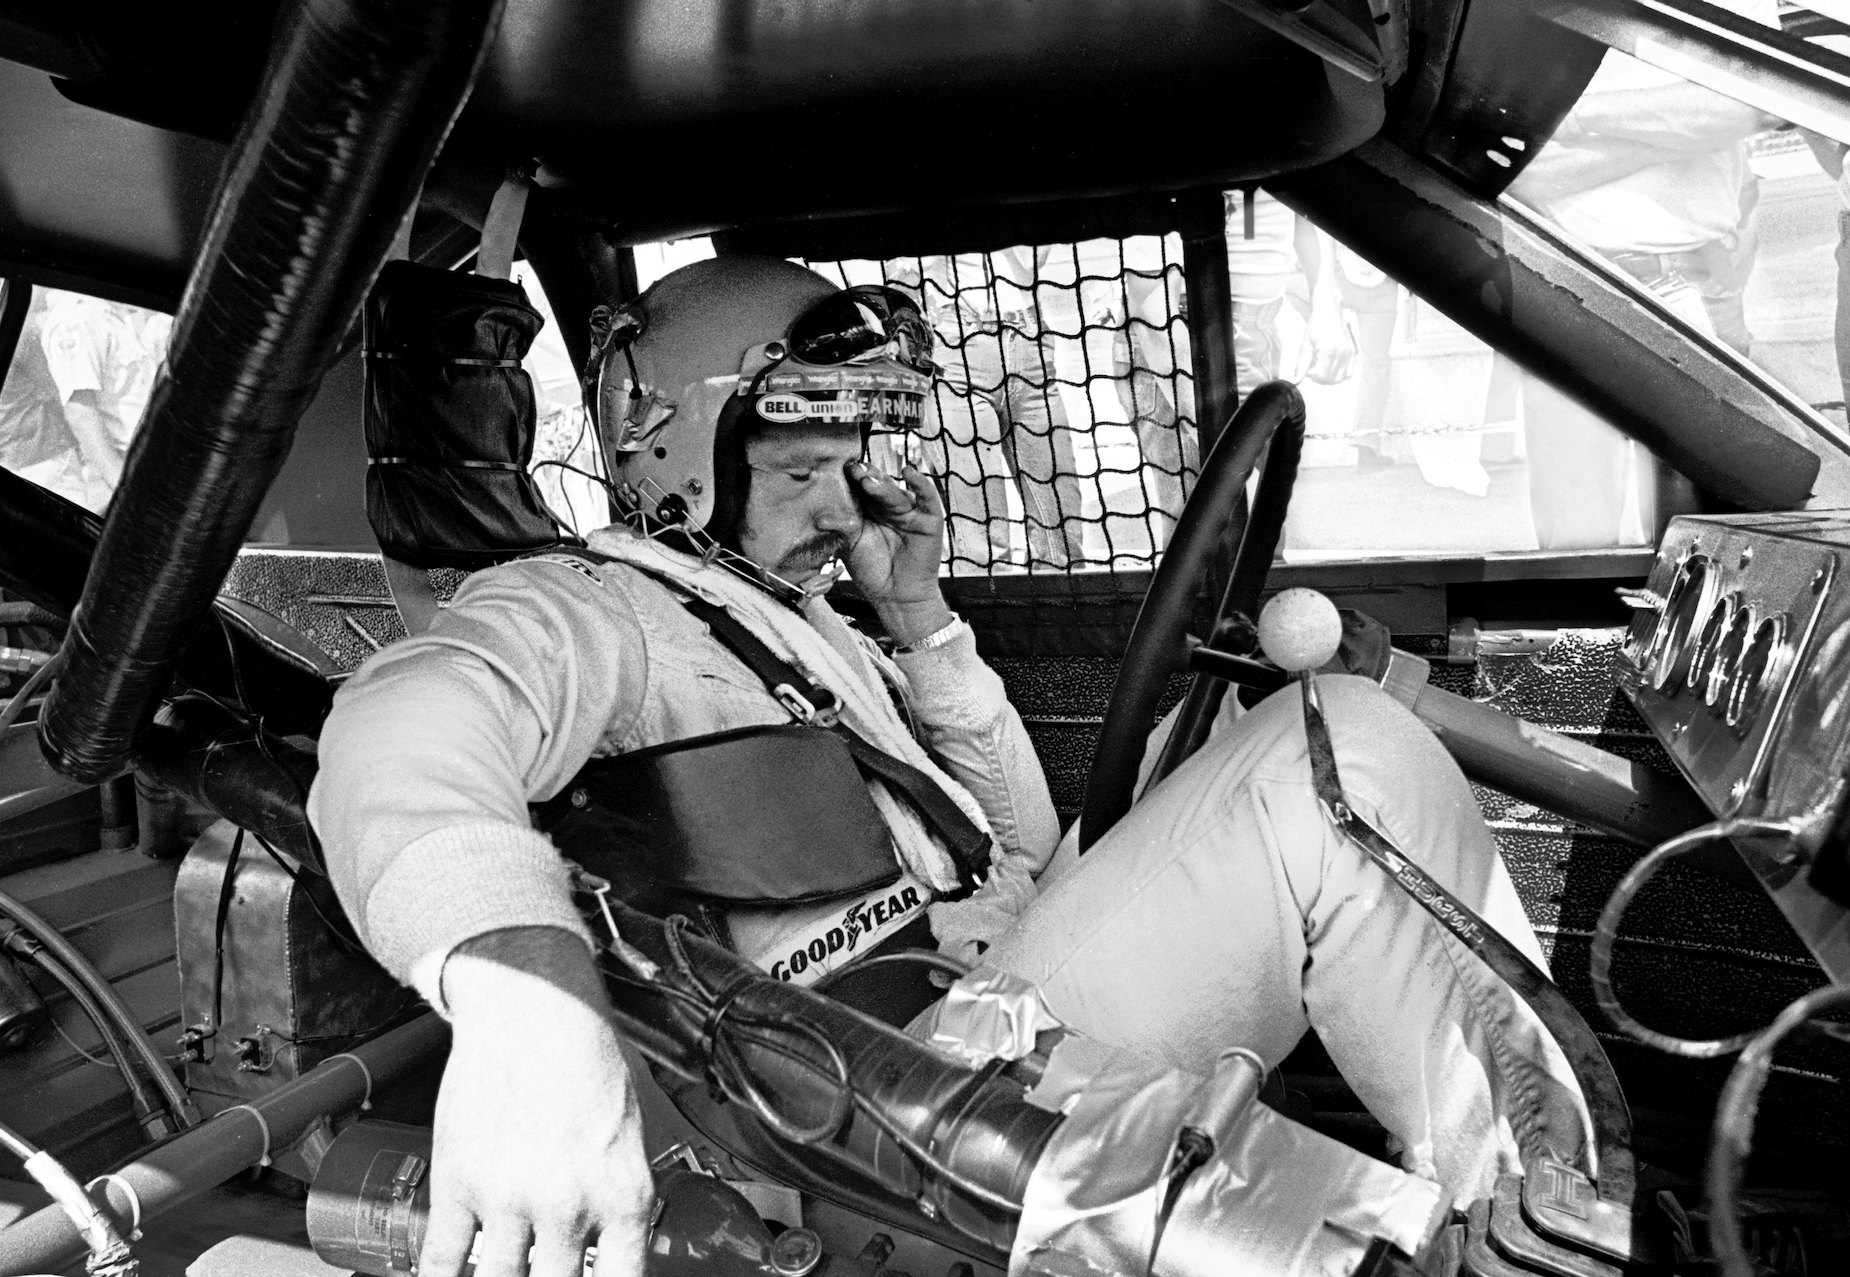 NASCAR legend Dale Earnhardt sits in the driver's seat